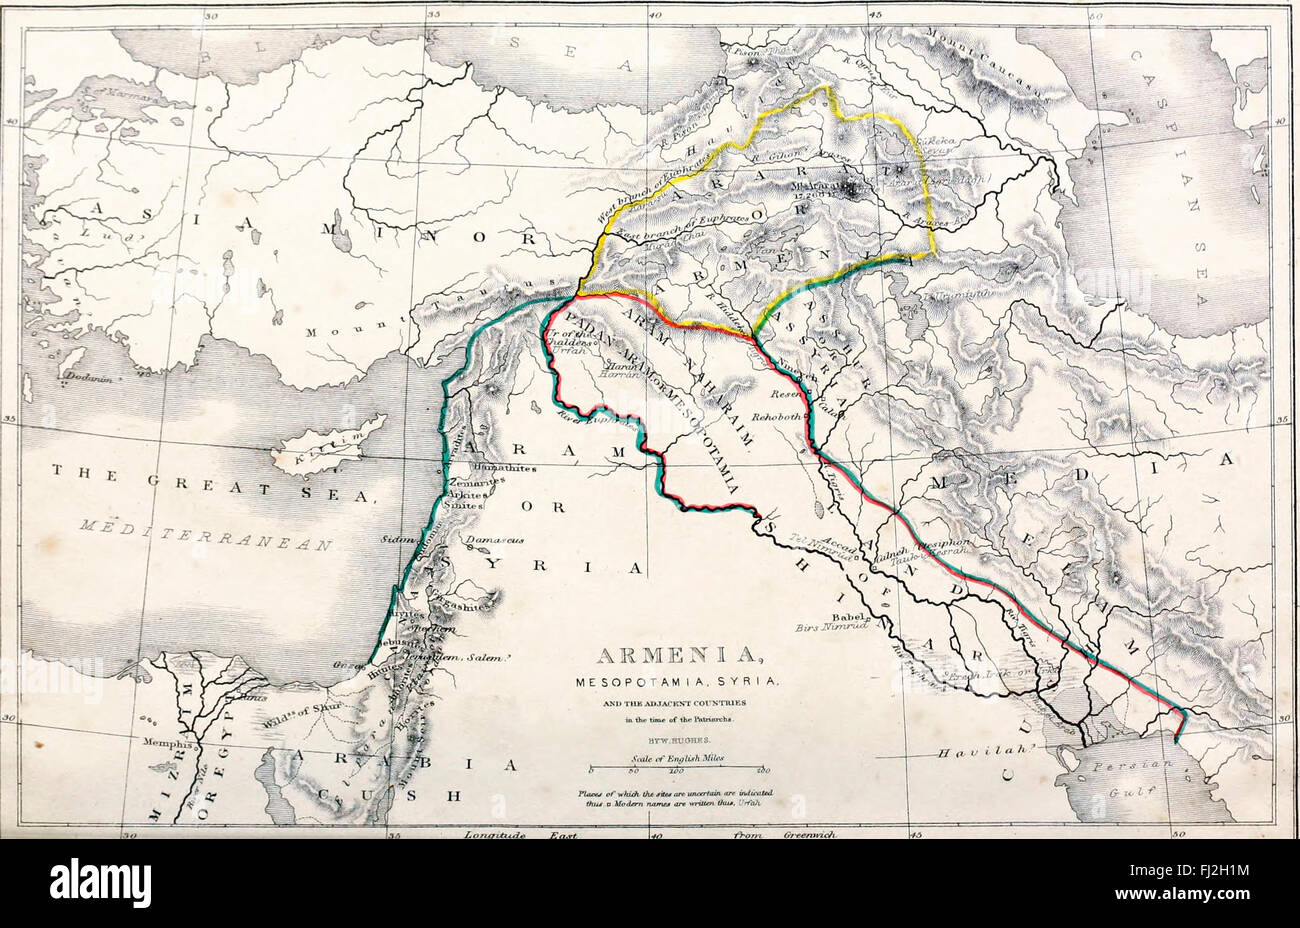 Map of Armenia, Mesopotamia, Syria and the Adjacent Countries in the time of the Patriarchs - Stock Image